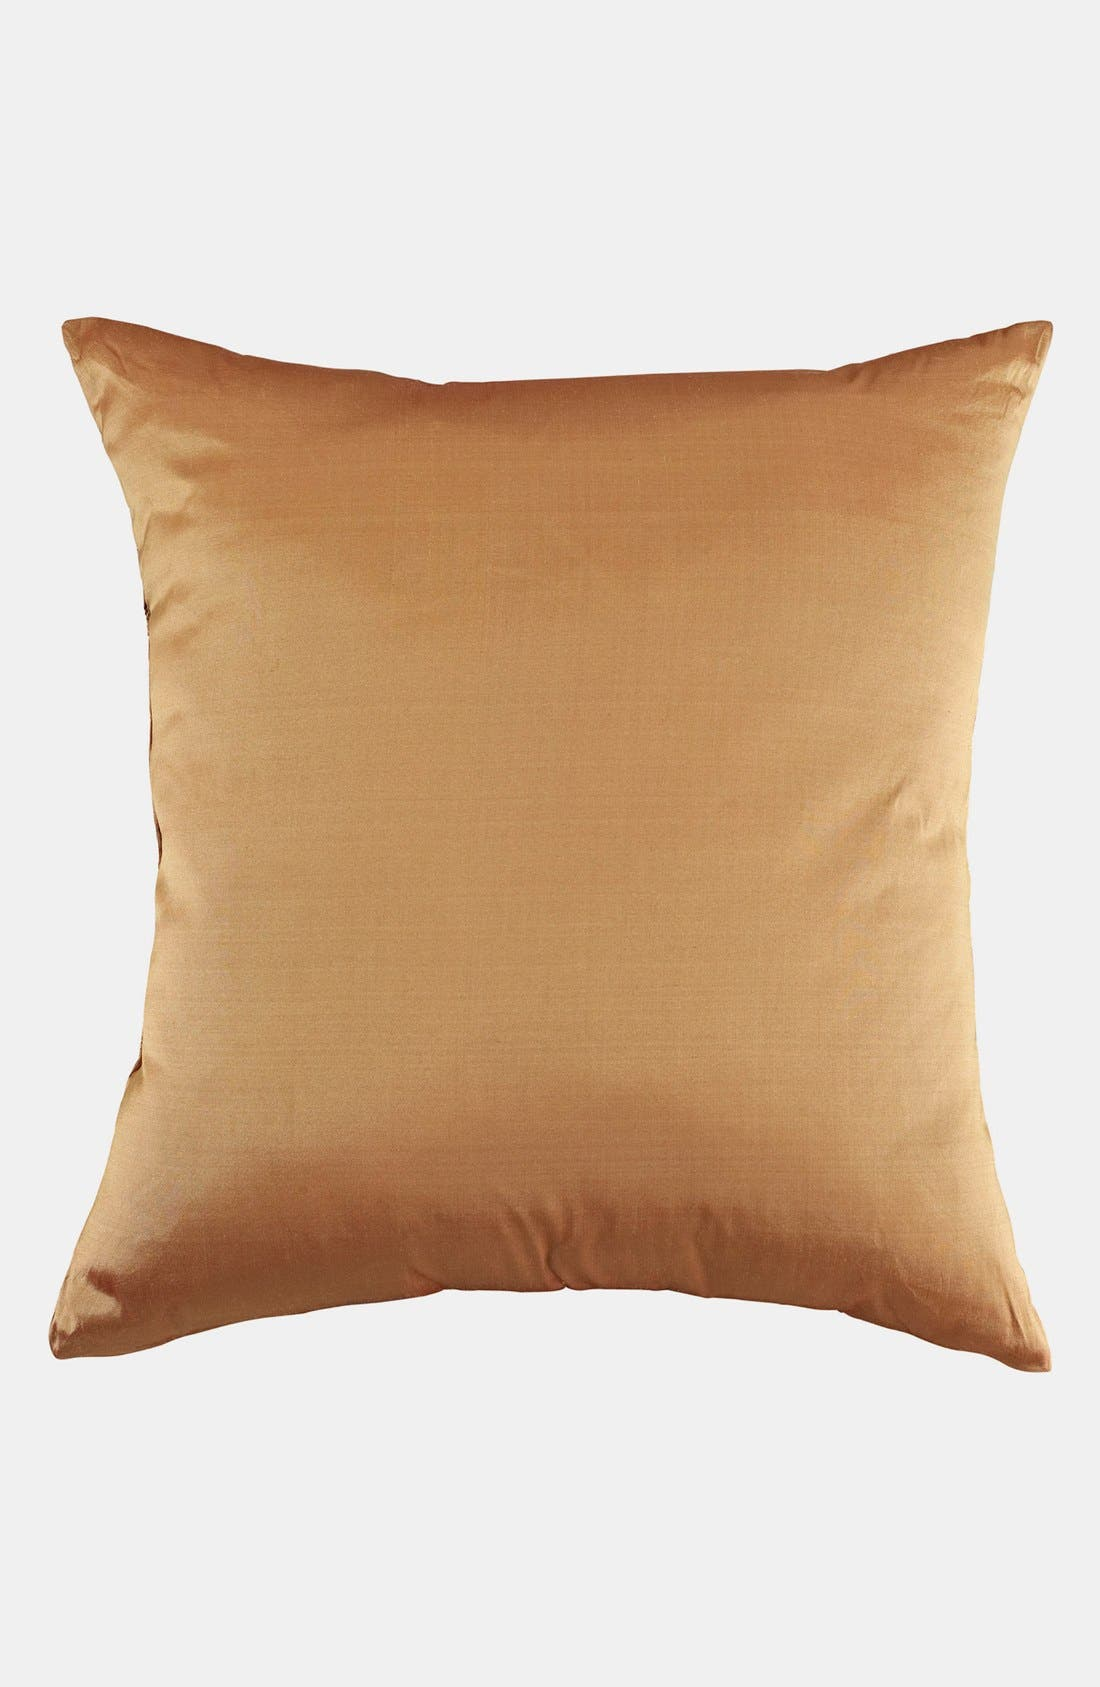 Alternate Image 1 Selected - KAS Designs 'Samara' Pillow (Online Only)